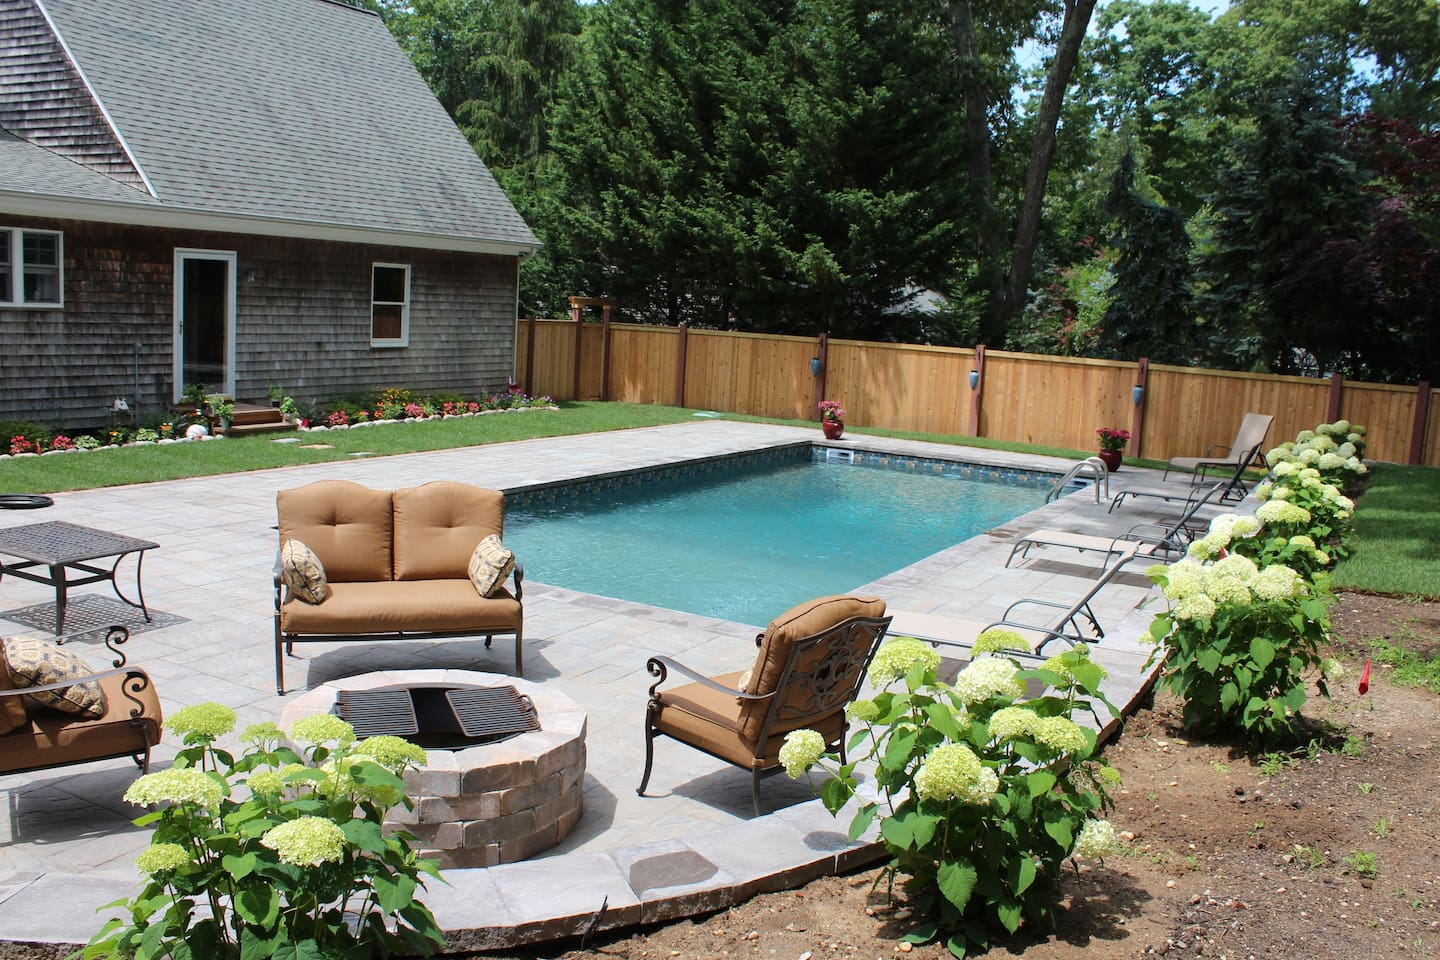 New salt water pool and fire pit